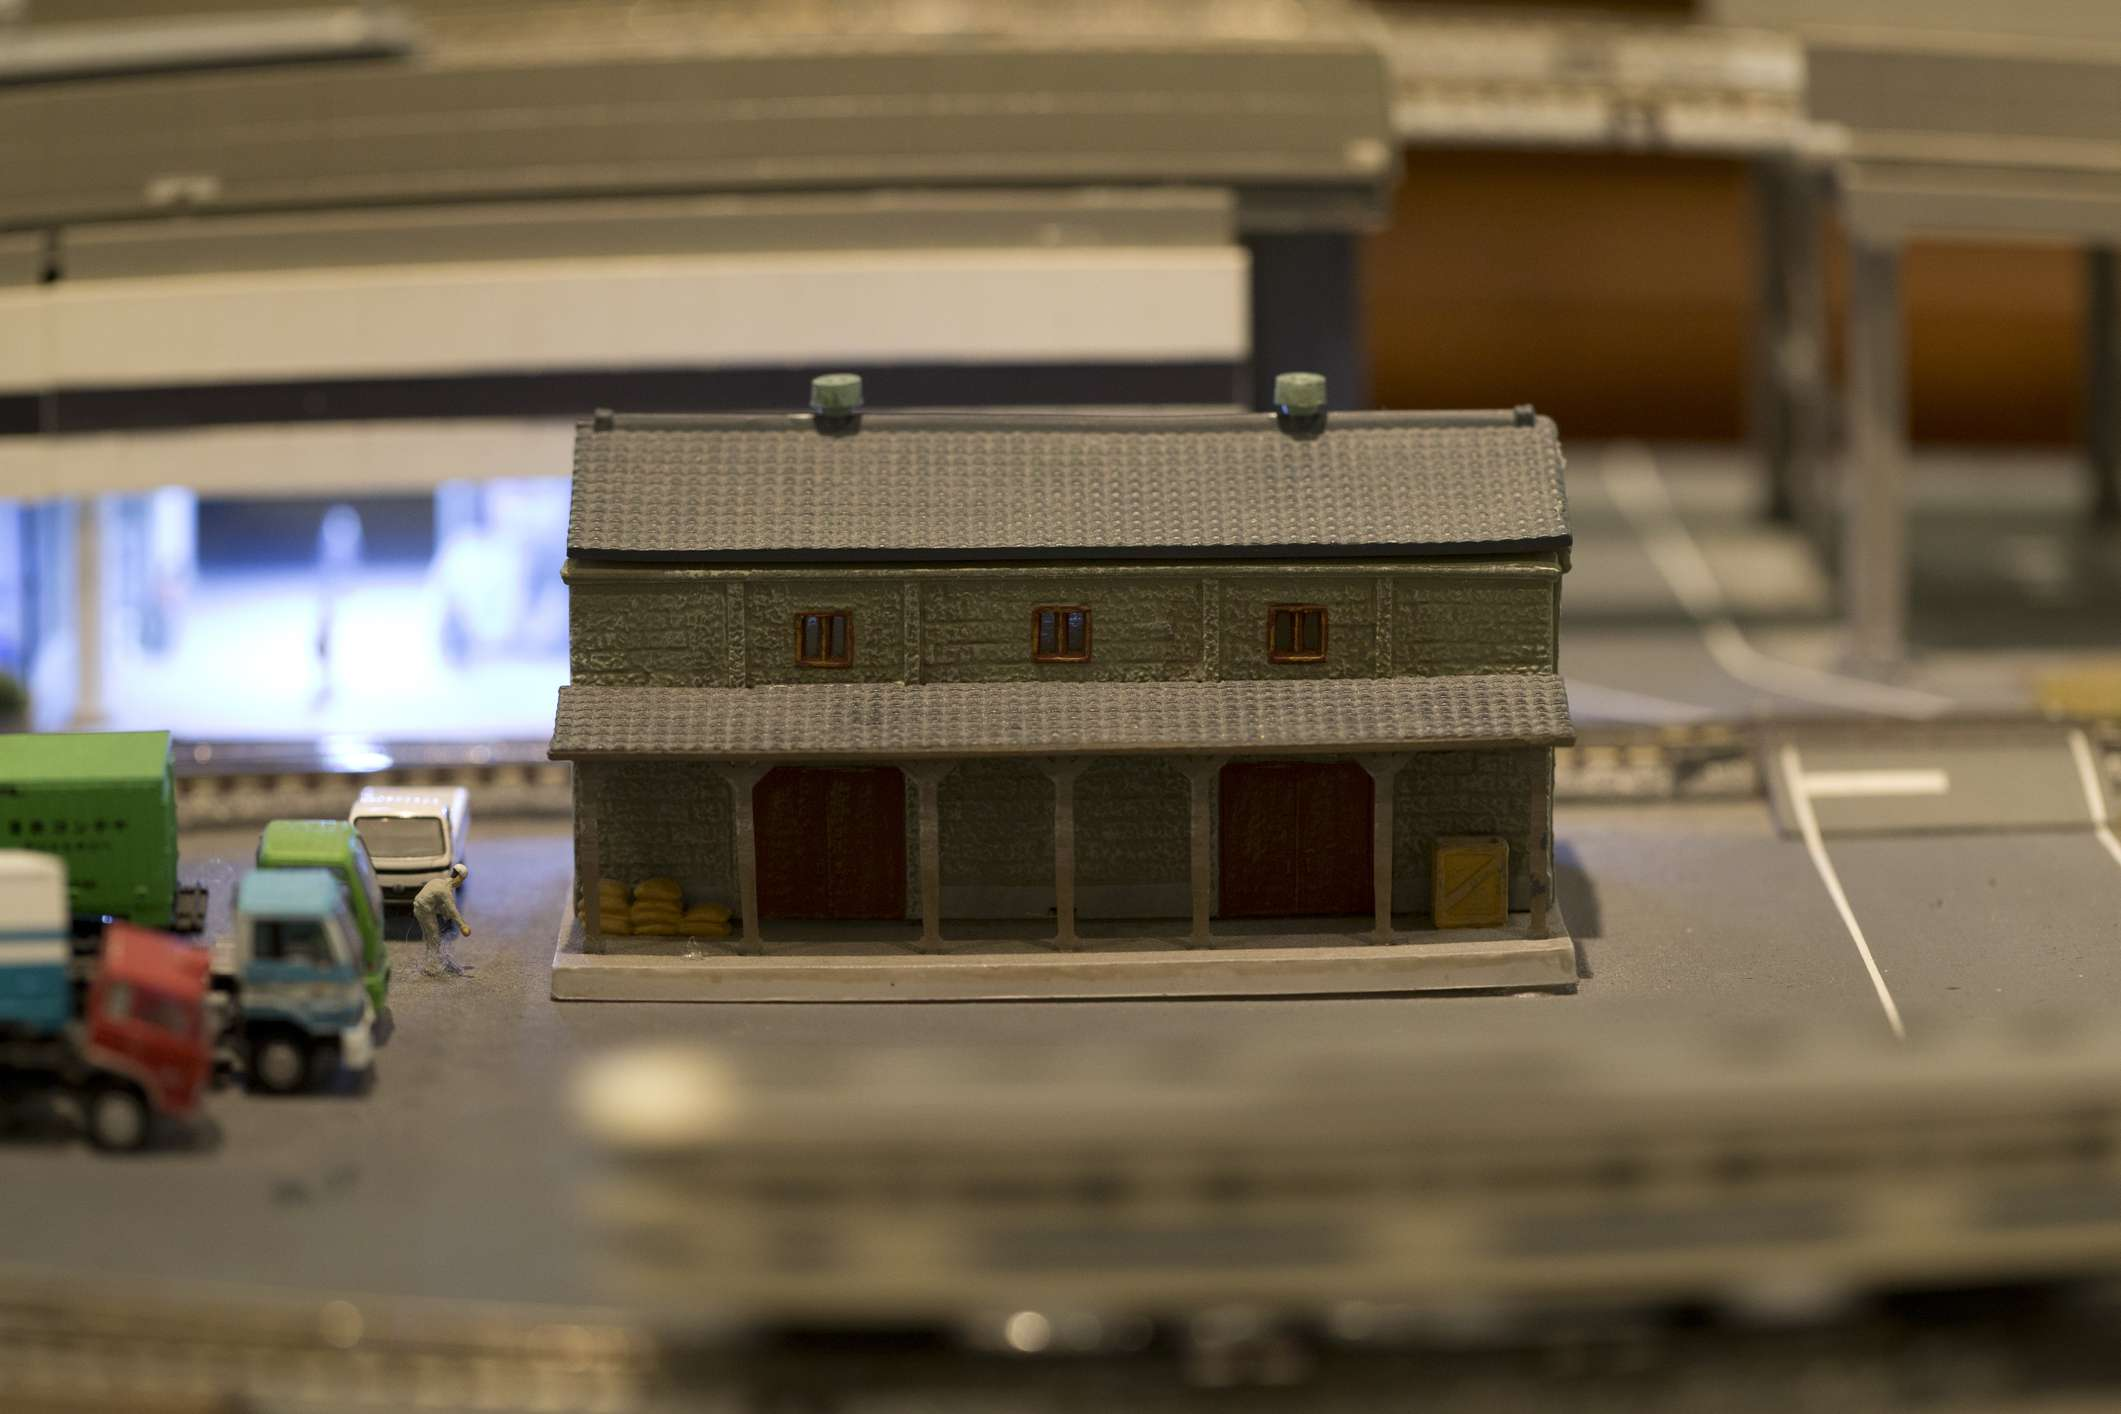 Miniature model building, with electric toy train whizzing by in the foreground.